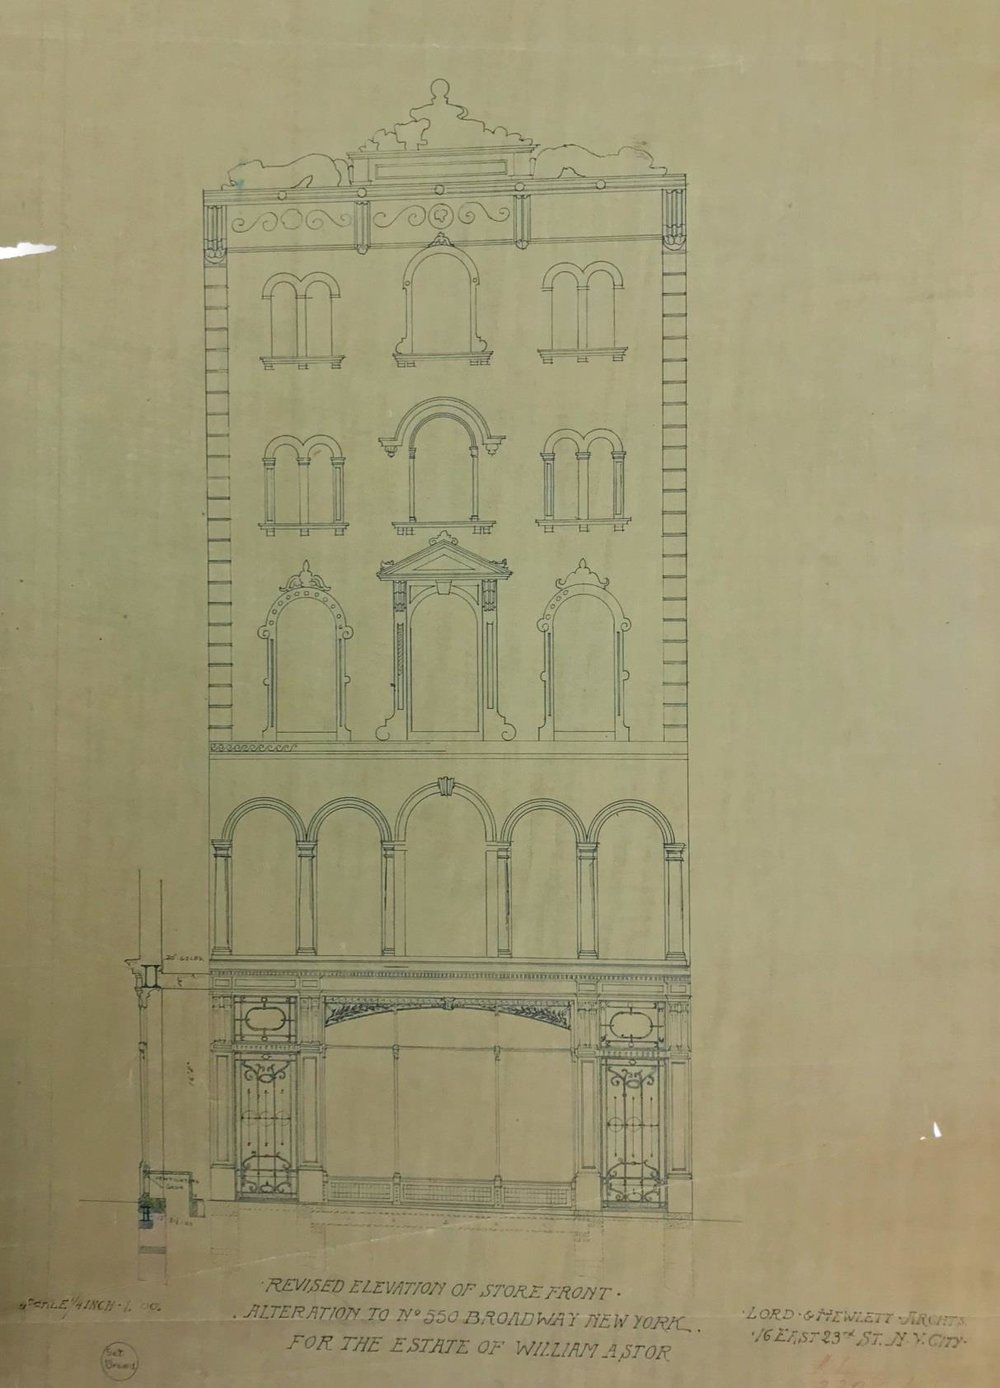 Revised Elevation of Storefront, Alteration to No. 550 Broadway, for the Estate of William Astor. Lord & Hewlett, Architects. Department of Buildings Collection, NYC Municipal Archives.